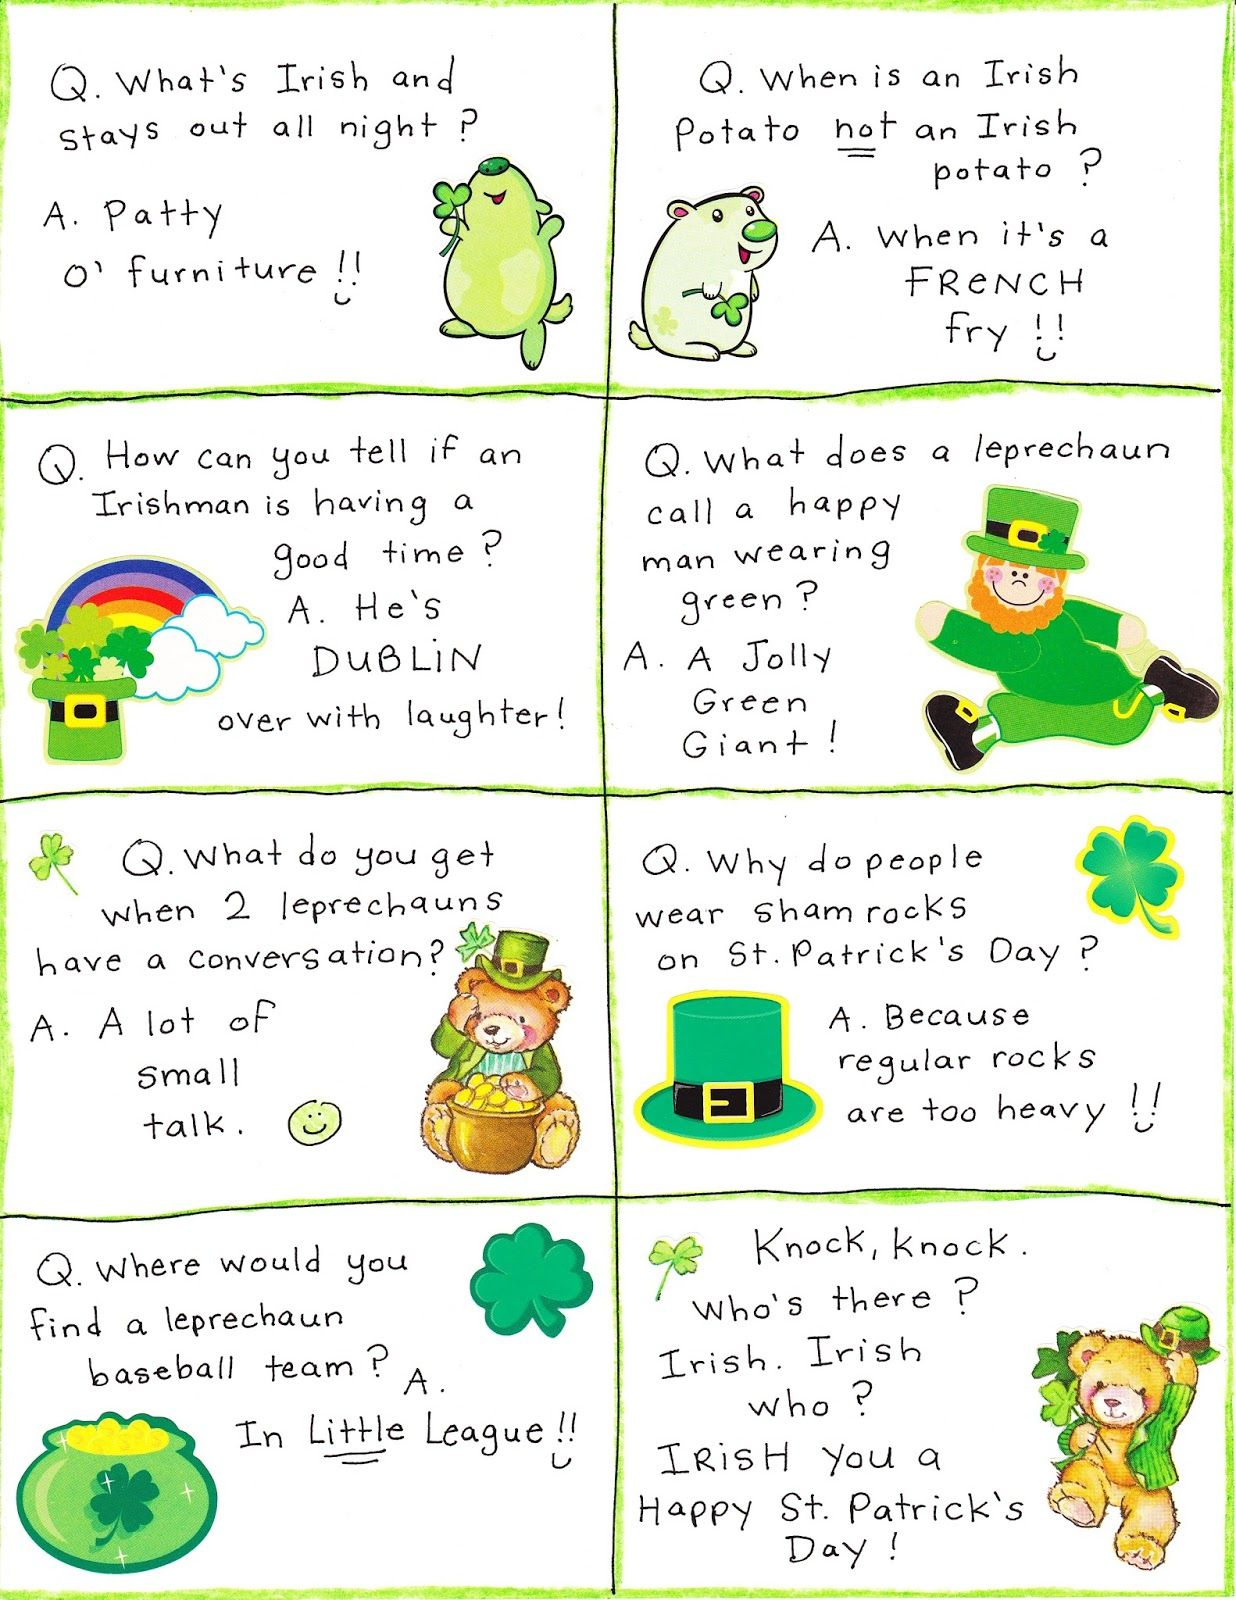 St. Patricks Day jokes Irish blessings and riddles